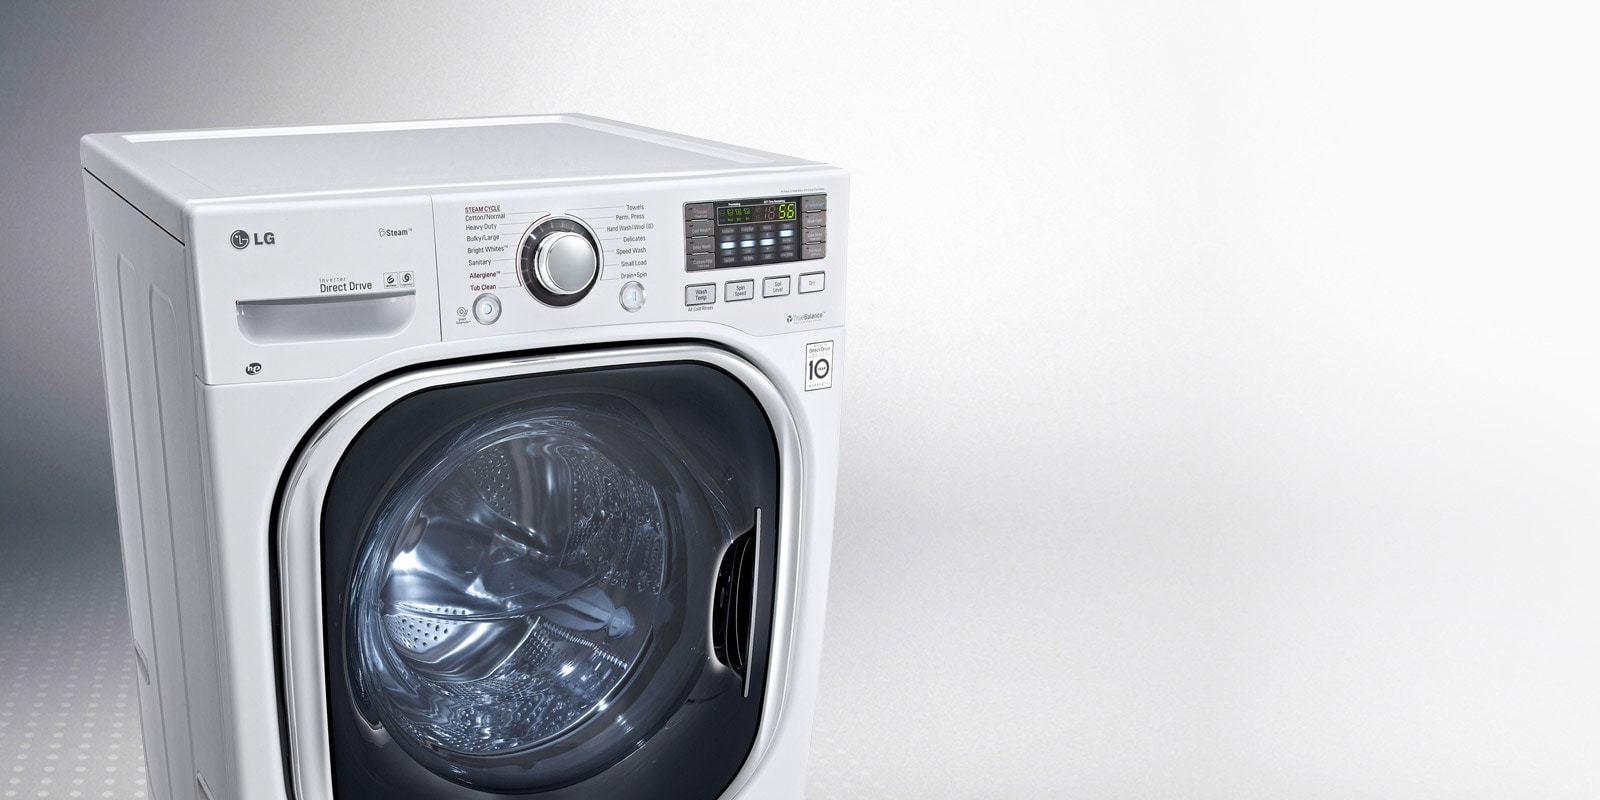 Washer And Dryer ~ Lg washer dryer combos wash faster save energy canada